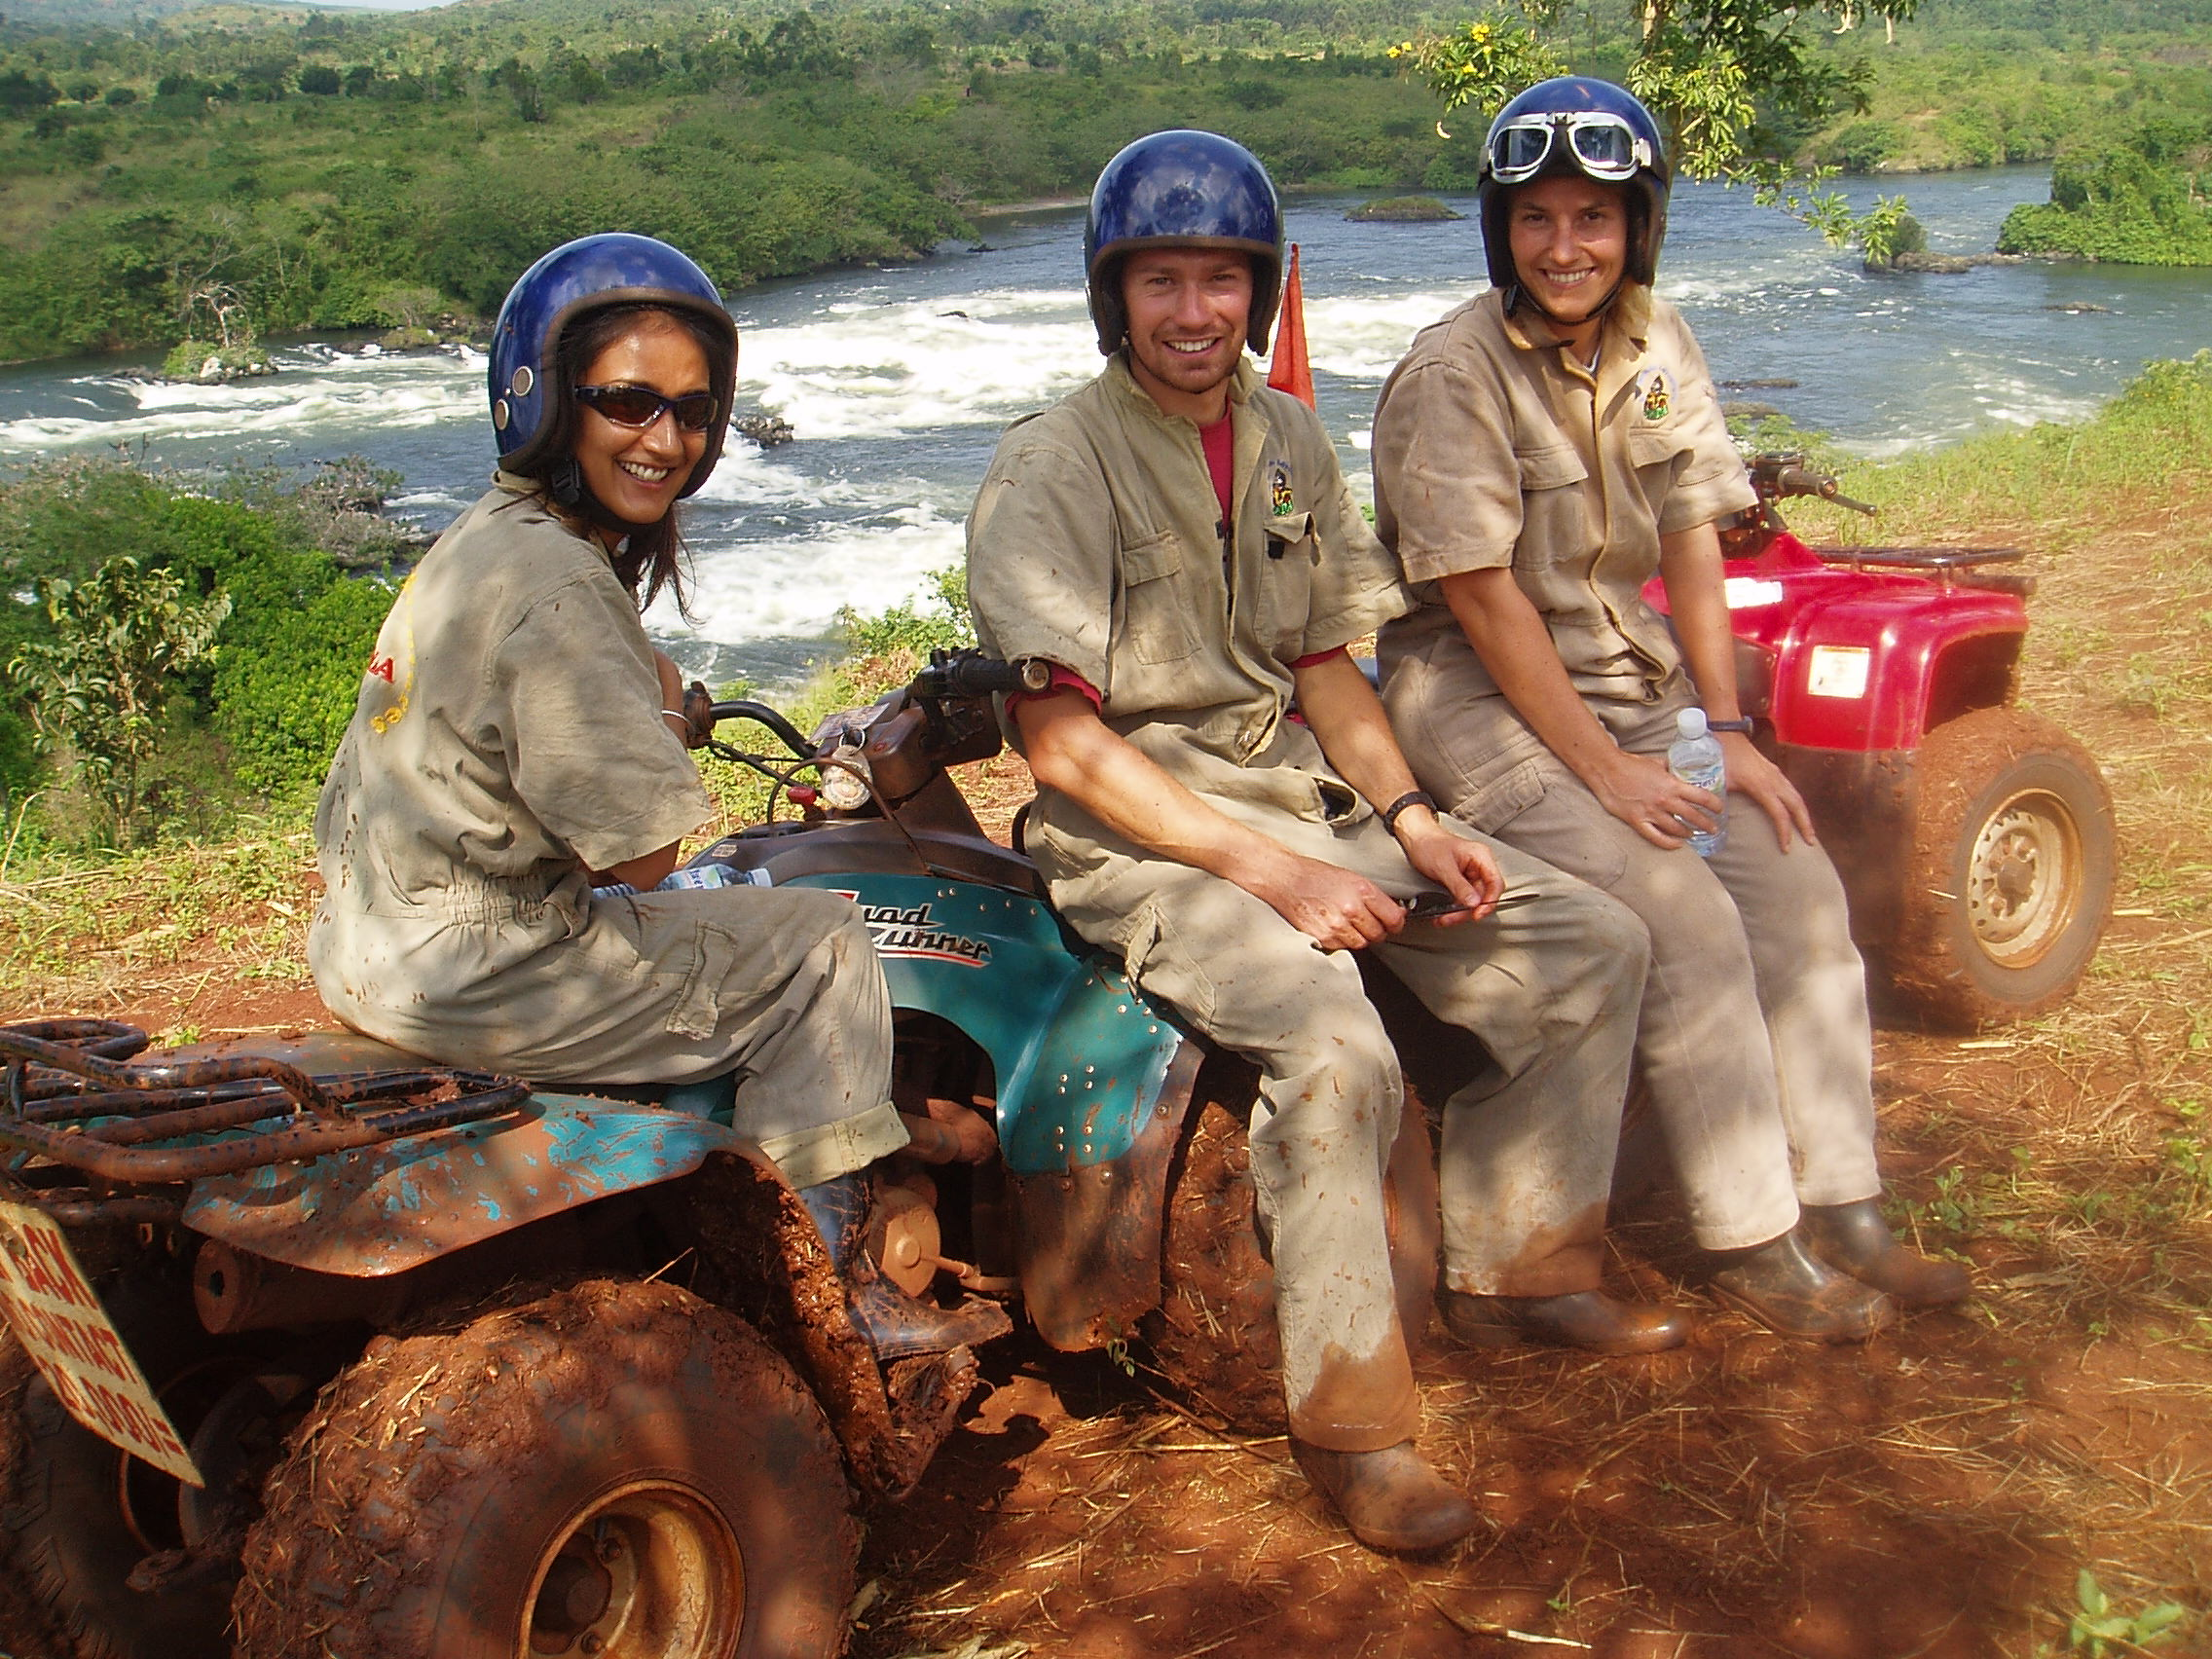 Quad biking on a gap year in Africa